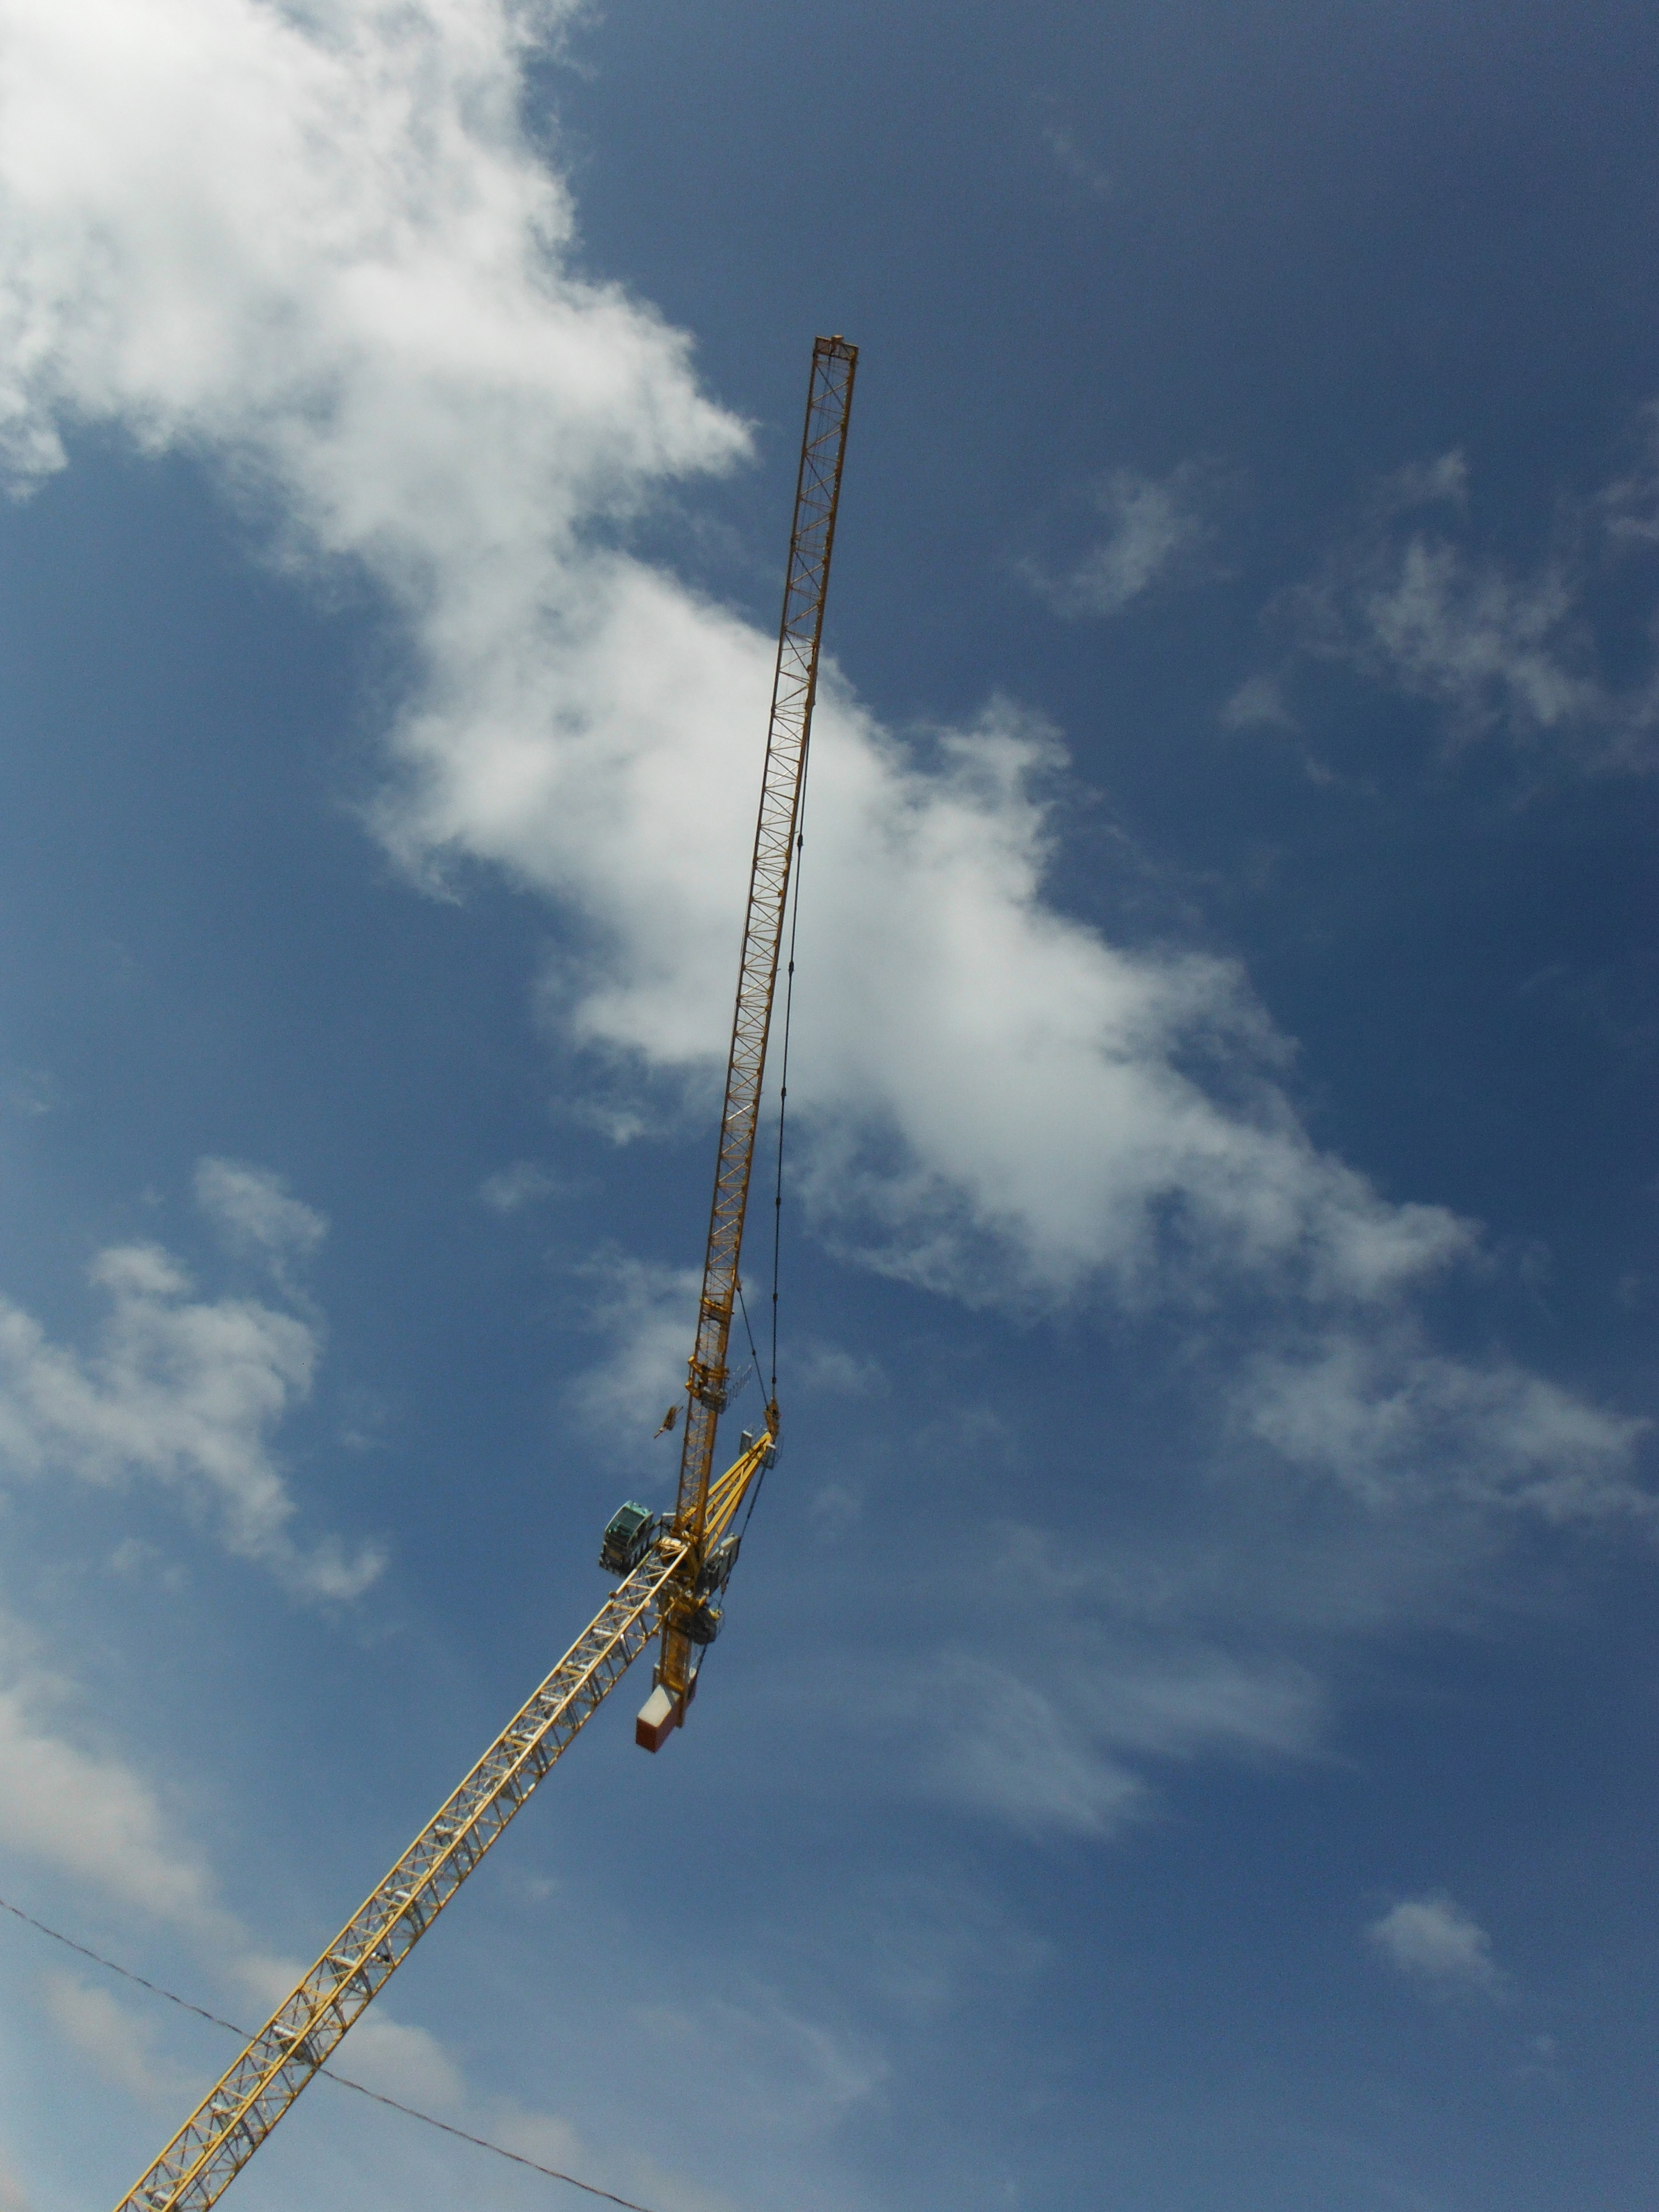 Another construction crane